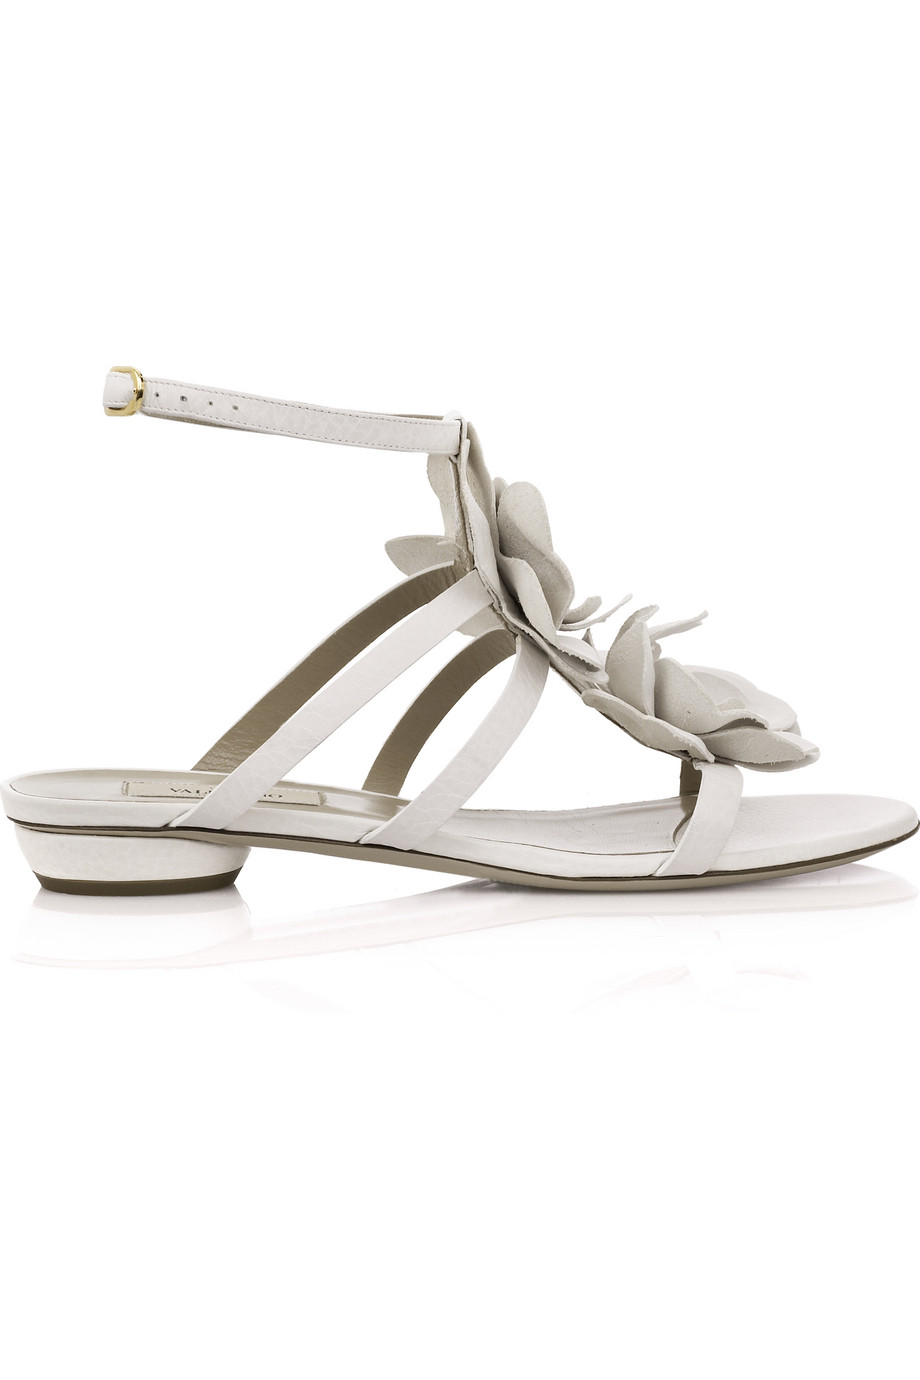 Valentino Flower Leather Sandals In White Lyst